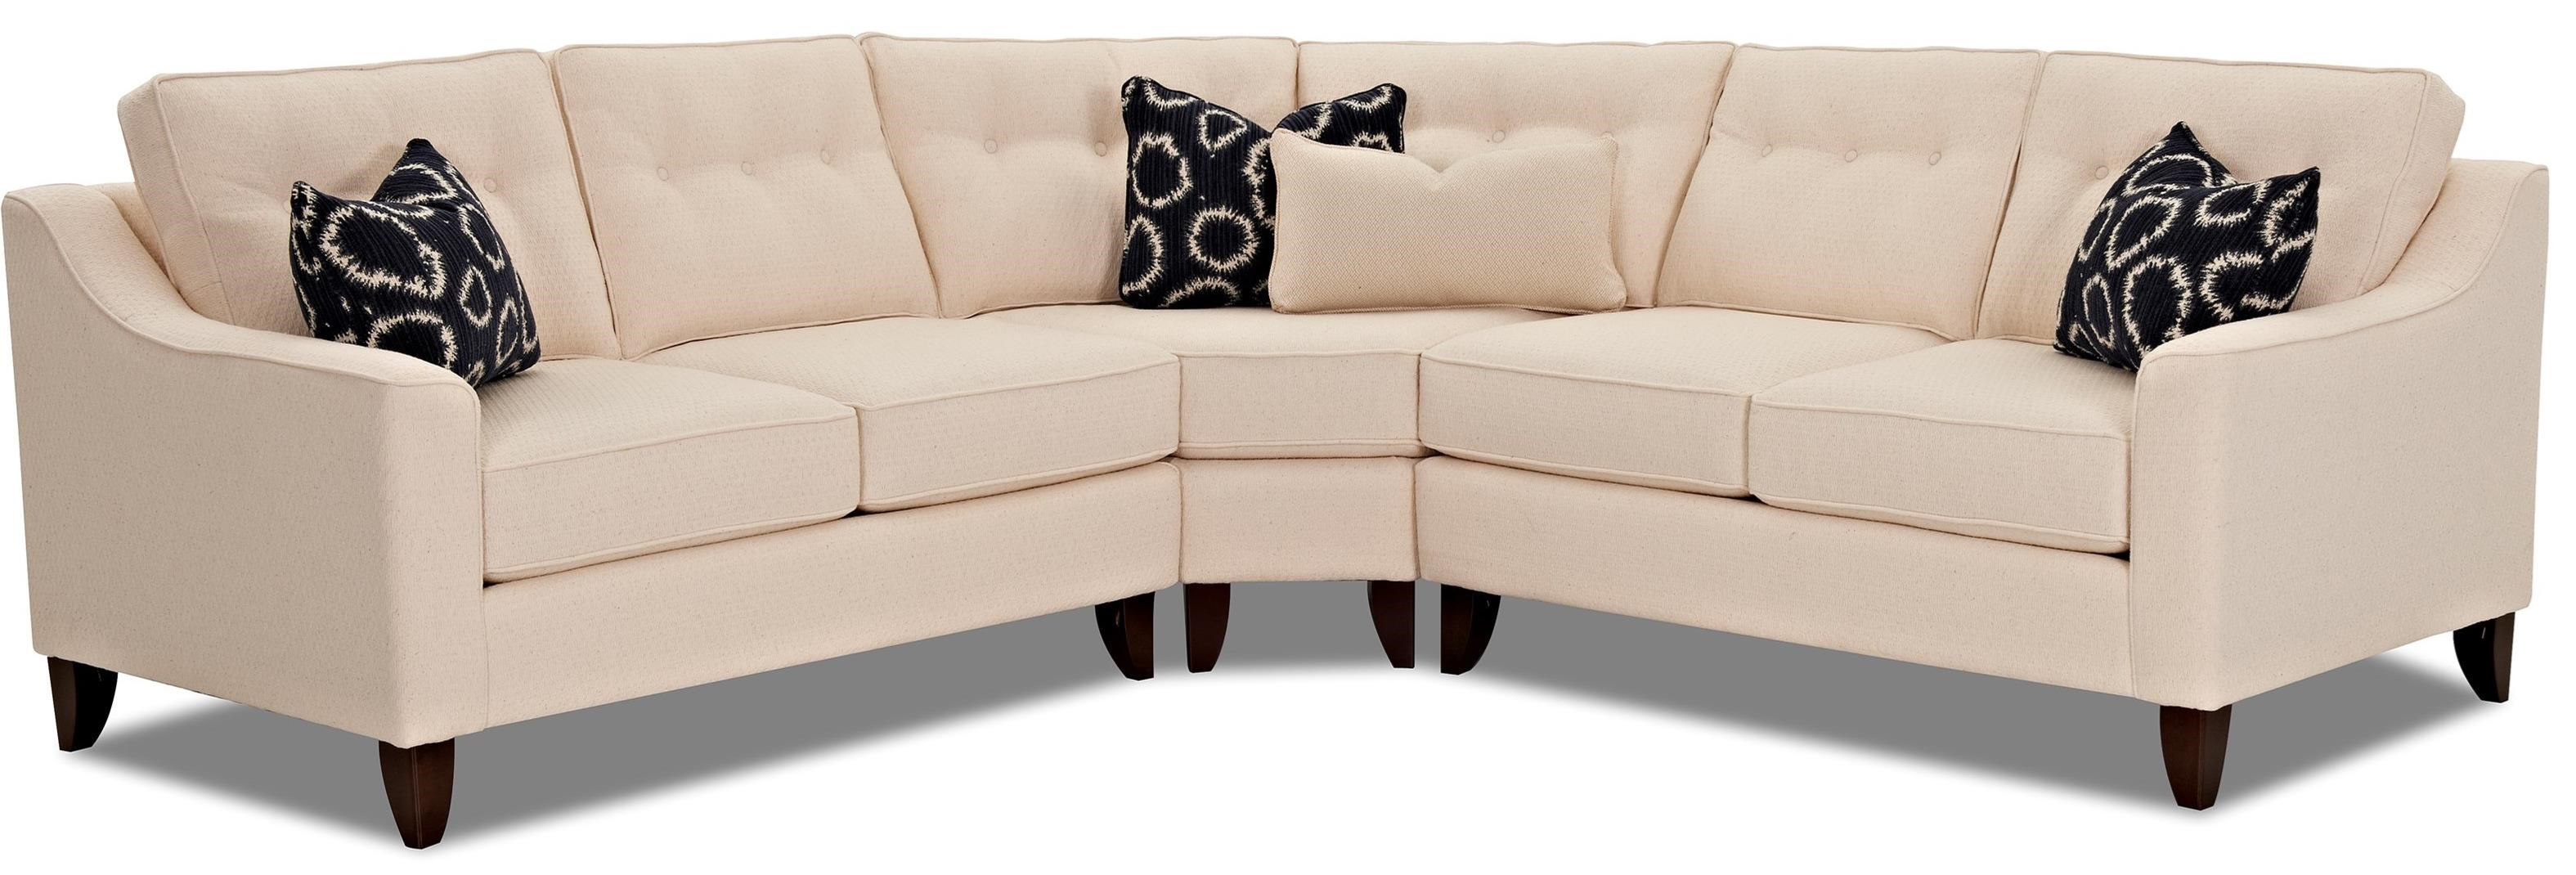 Audrina 3 Piece Sectional with Wedge by Klaussner at Johnny Janosik